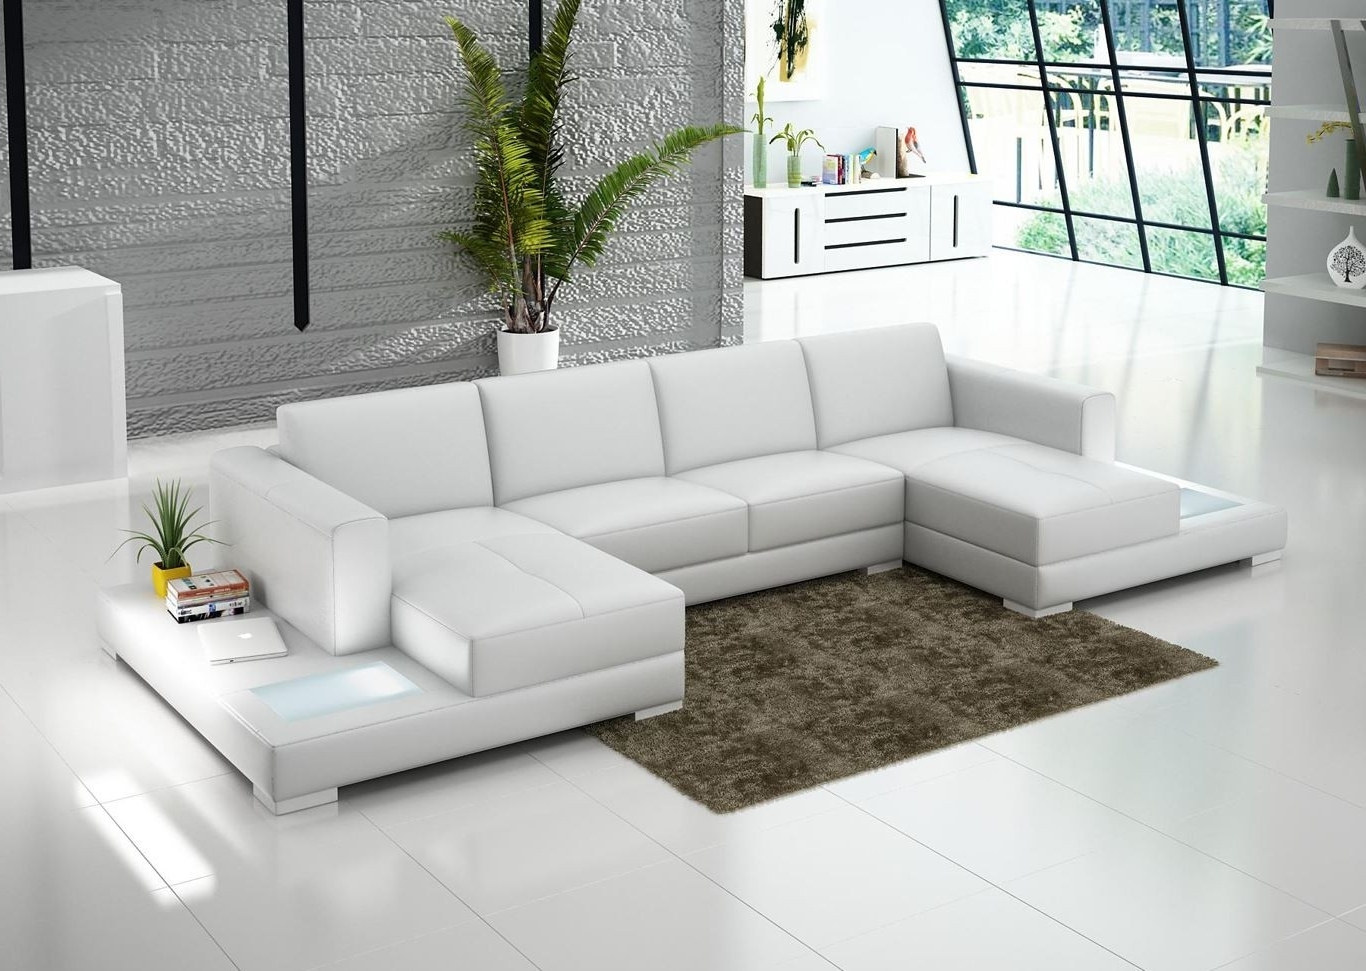 Popular Double Chaise Sectional For Complete And Perfect Welcoming Living For Double Chaise Sofas (View 10 of 15)